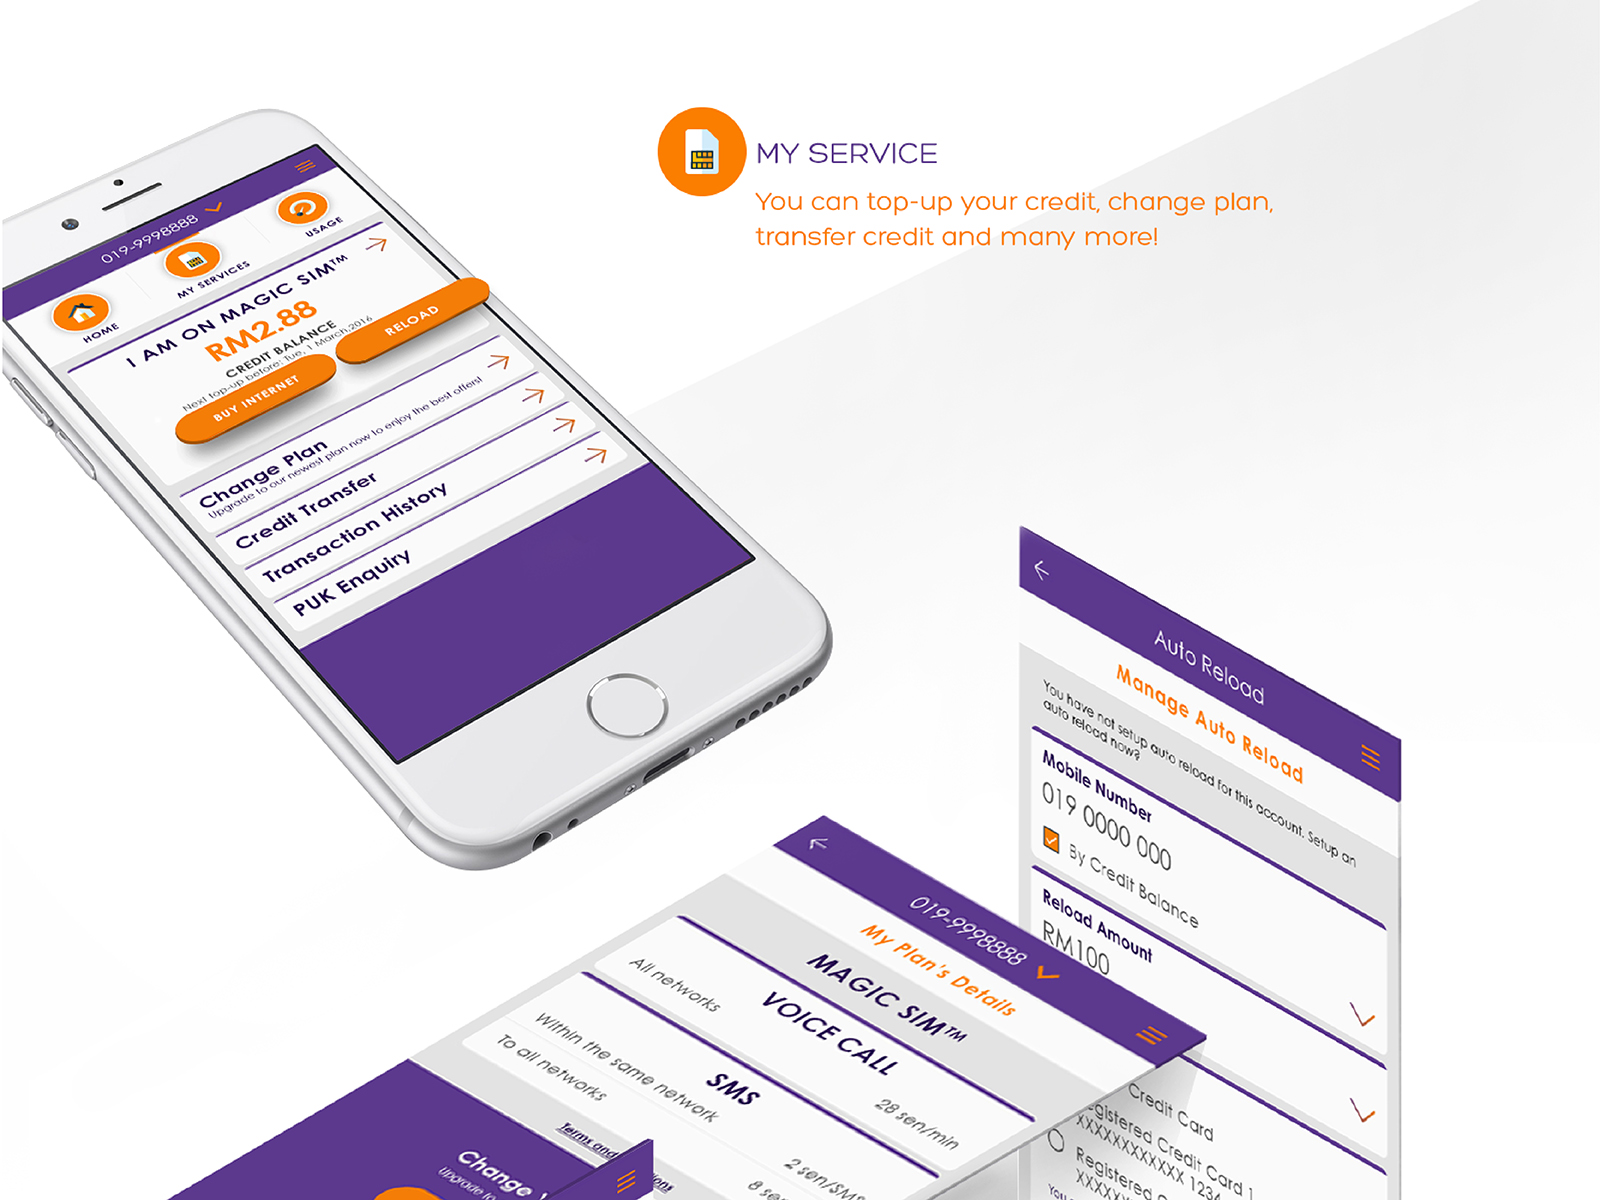 Xpax mobile app my service pages where users can top-up credit, change plan, transfer credit and so much more